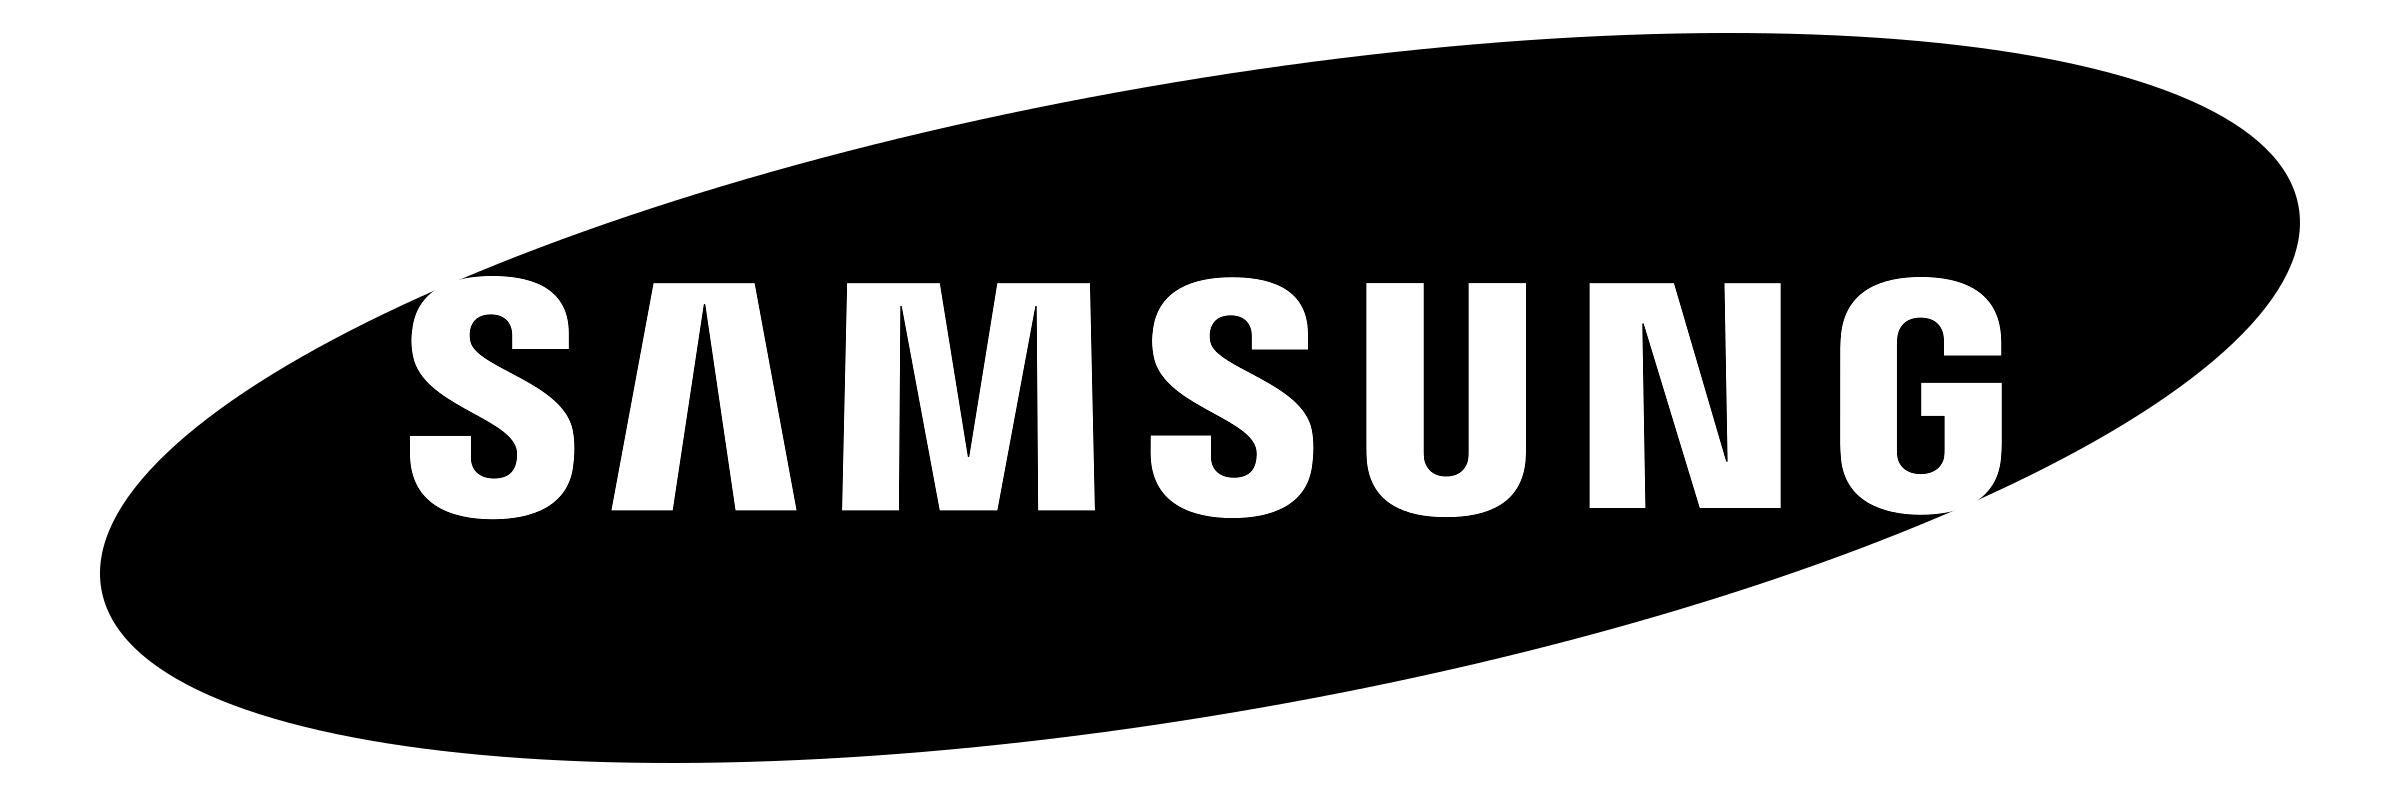 Samsung Logo - samsung-logo-black-transparent - Better Placed